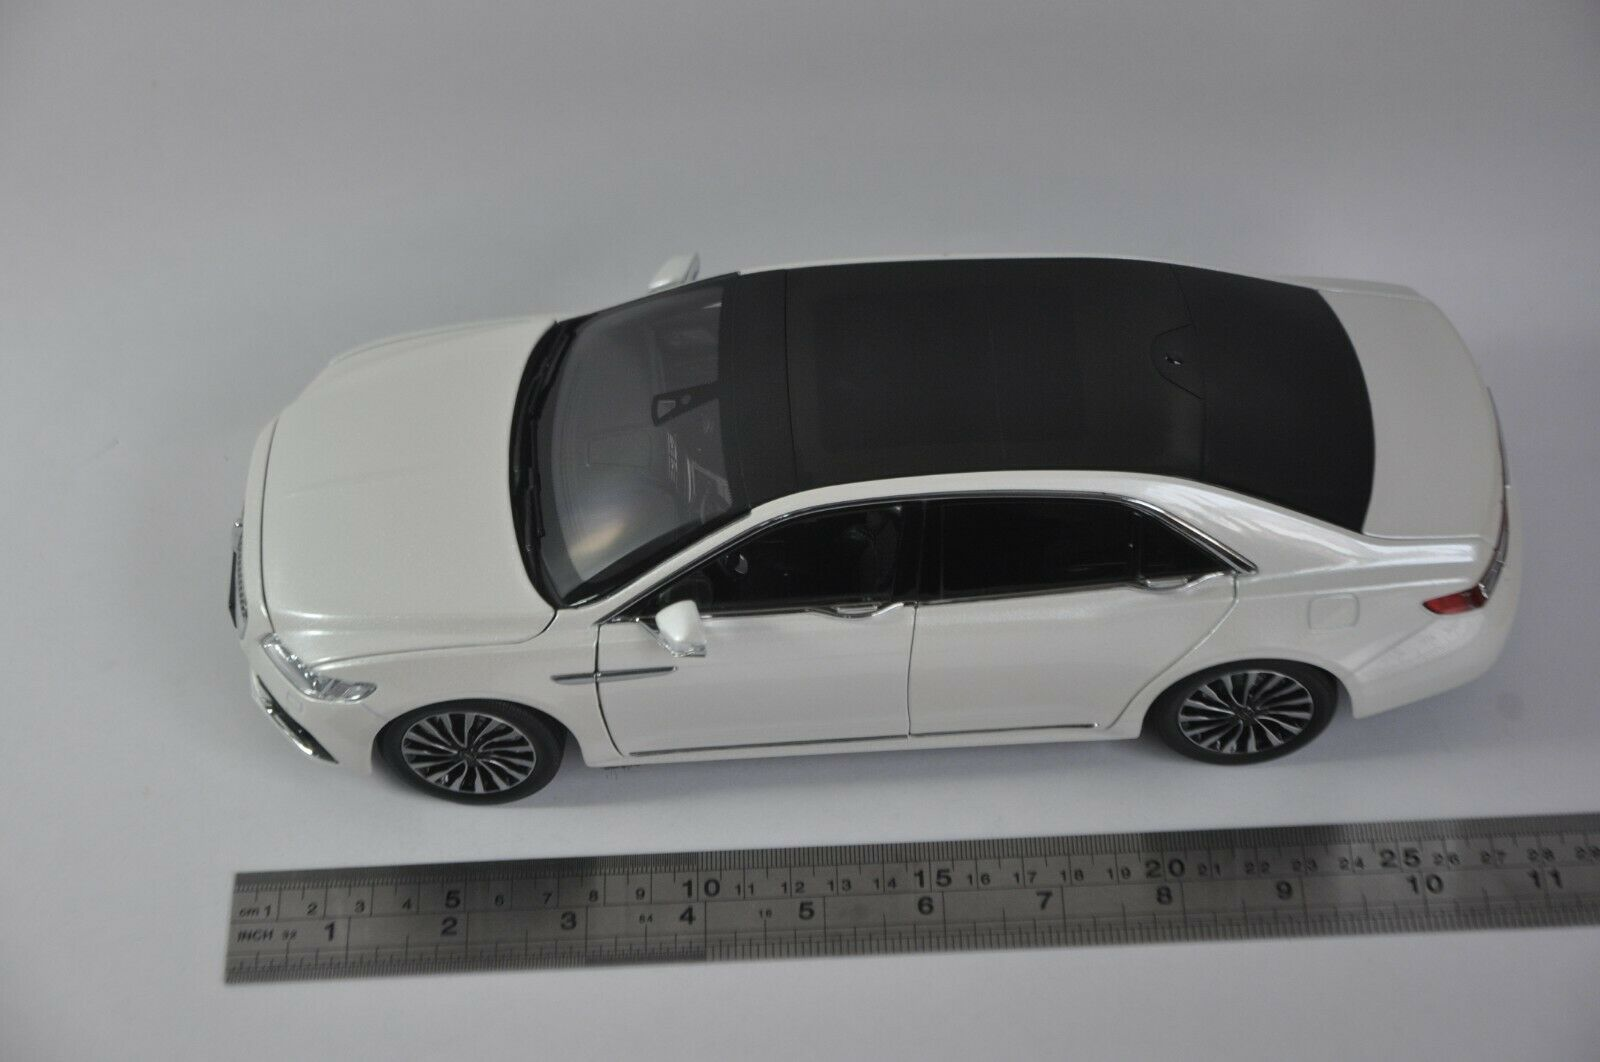 1/18 Lincoln Continental 2018 White Original Factory Alloy Toy Car, Diecast Scale Model Car, Collectible Model Car, Miniature Collection Die-cast Toy Vehicles Gifts